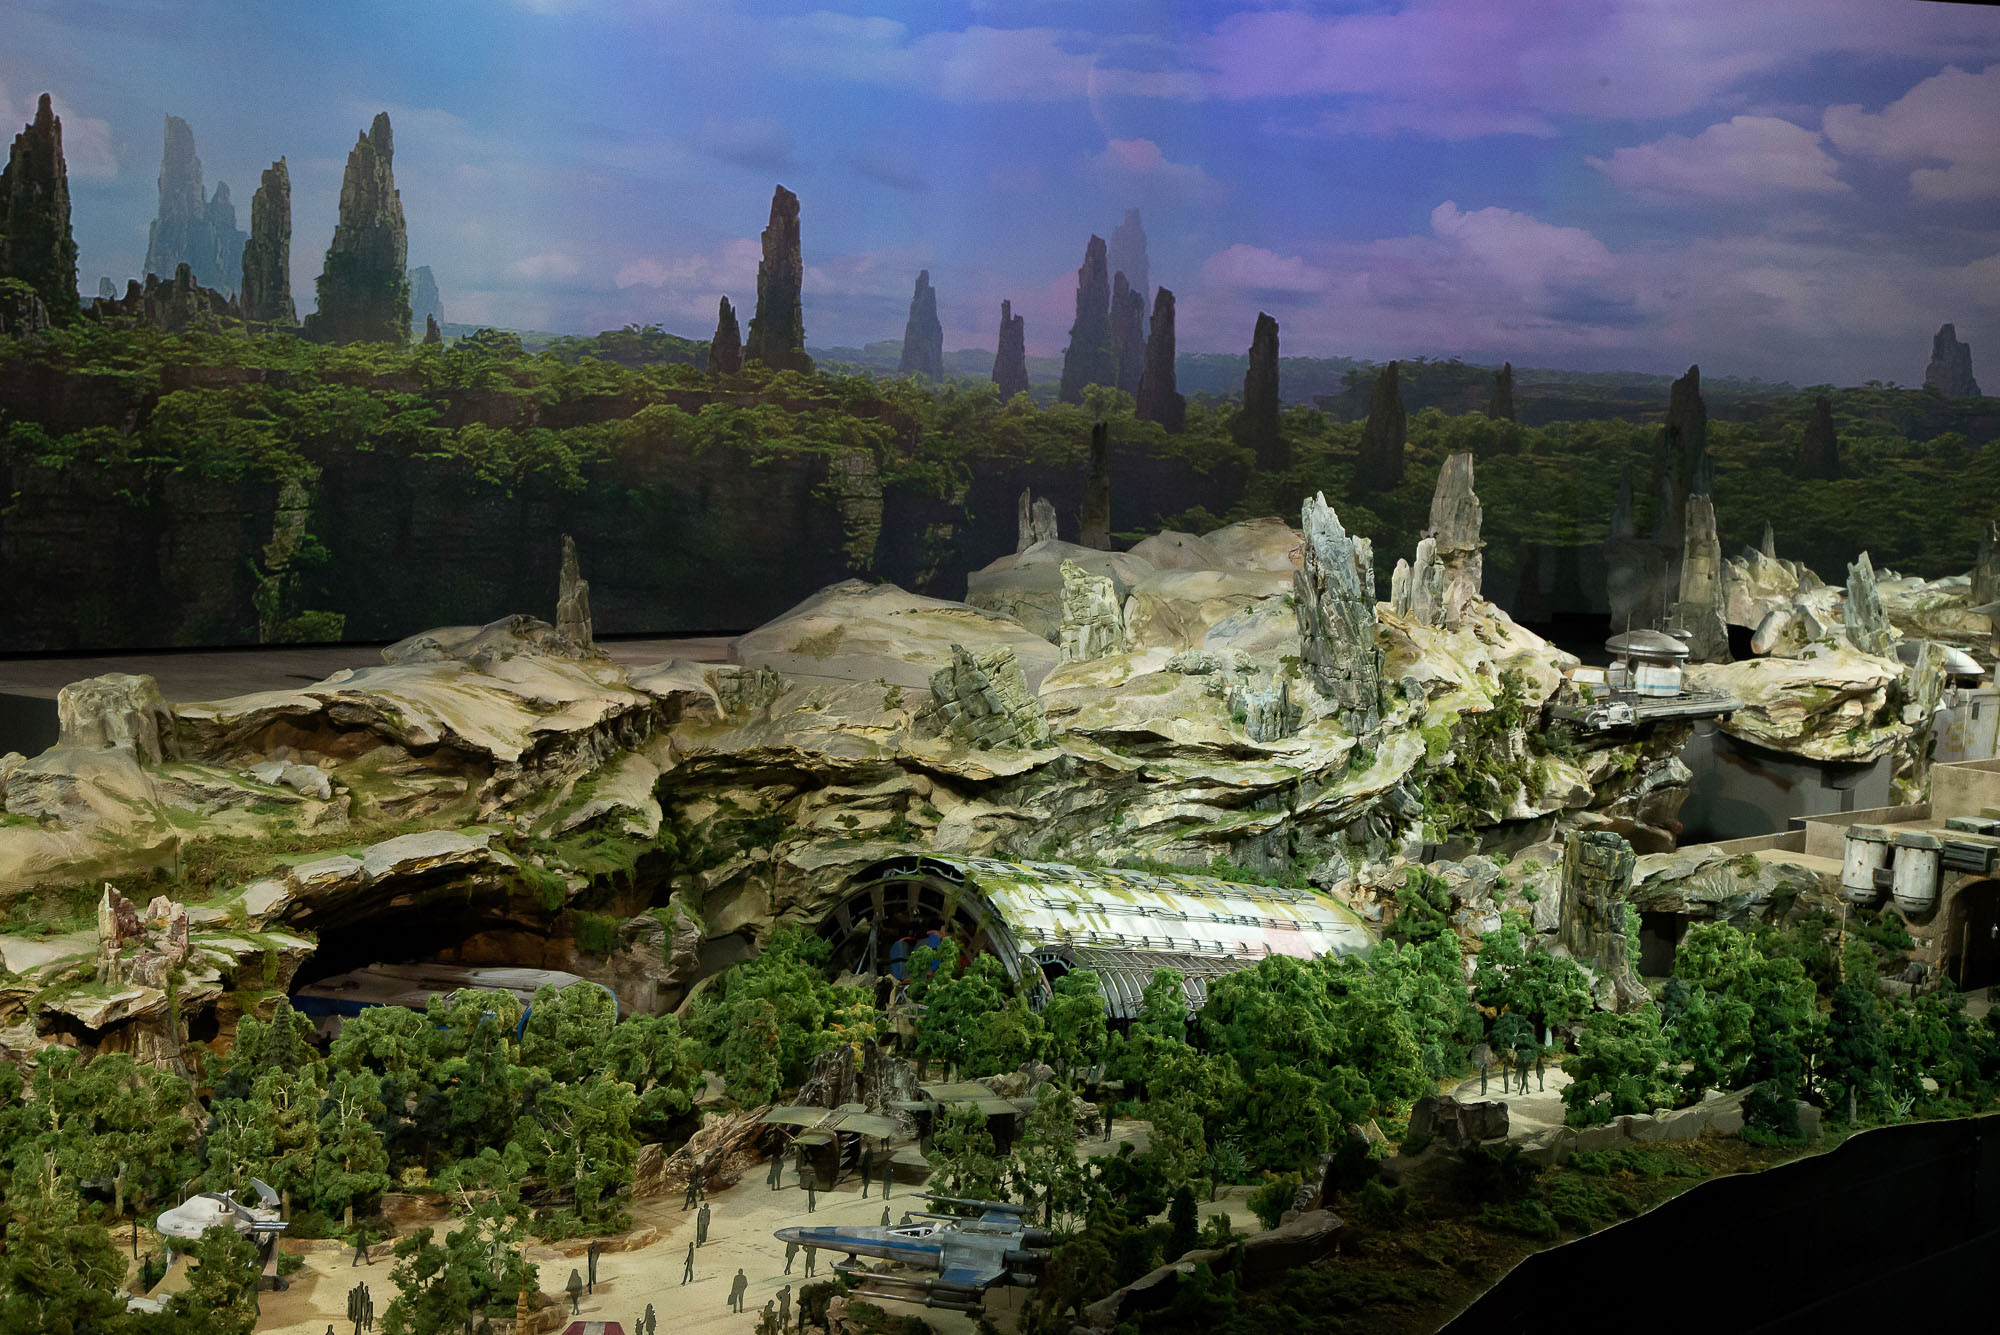 Best ideas about Star Wars Landscape . Save or Pin PHOTOS VIDEO Star Wars Land Model at D23 Expo Blog Mickey Now.